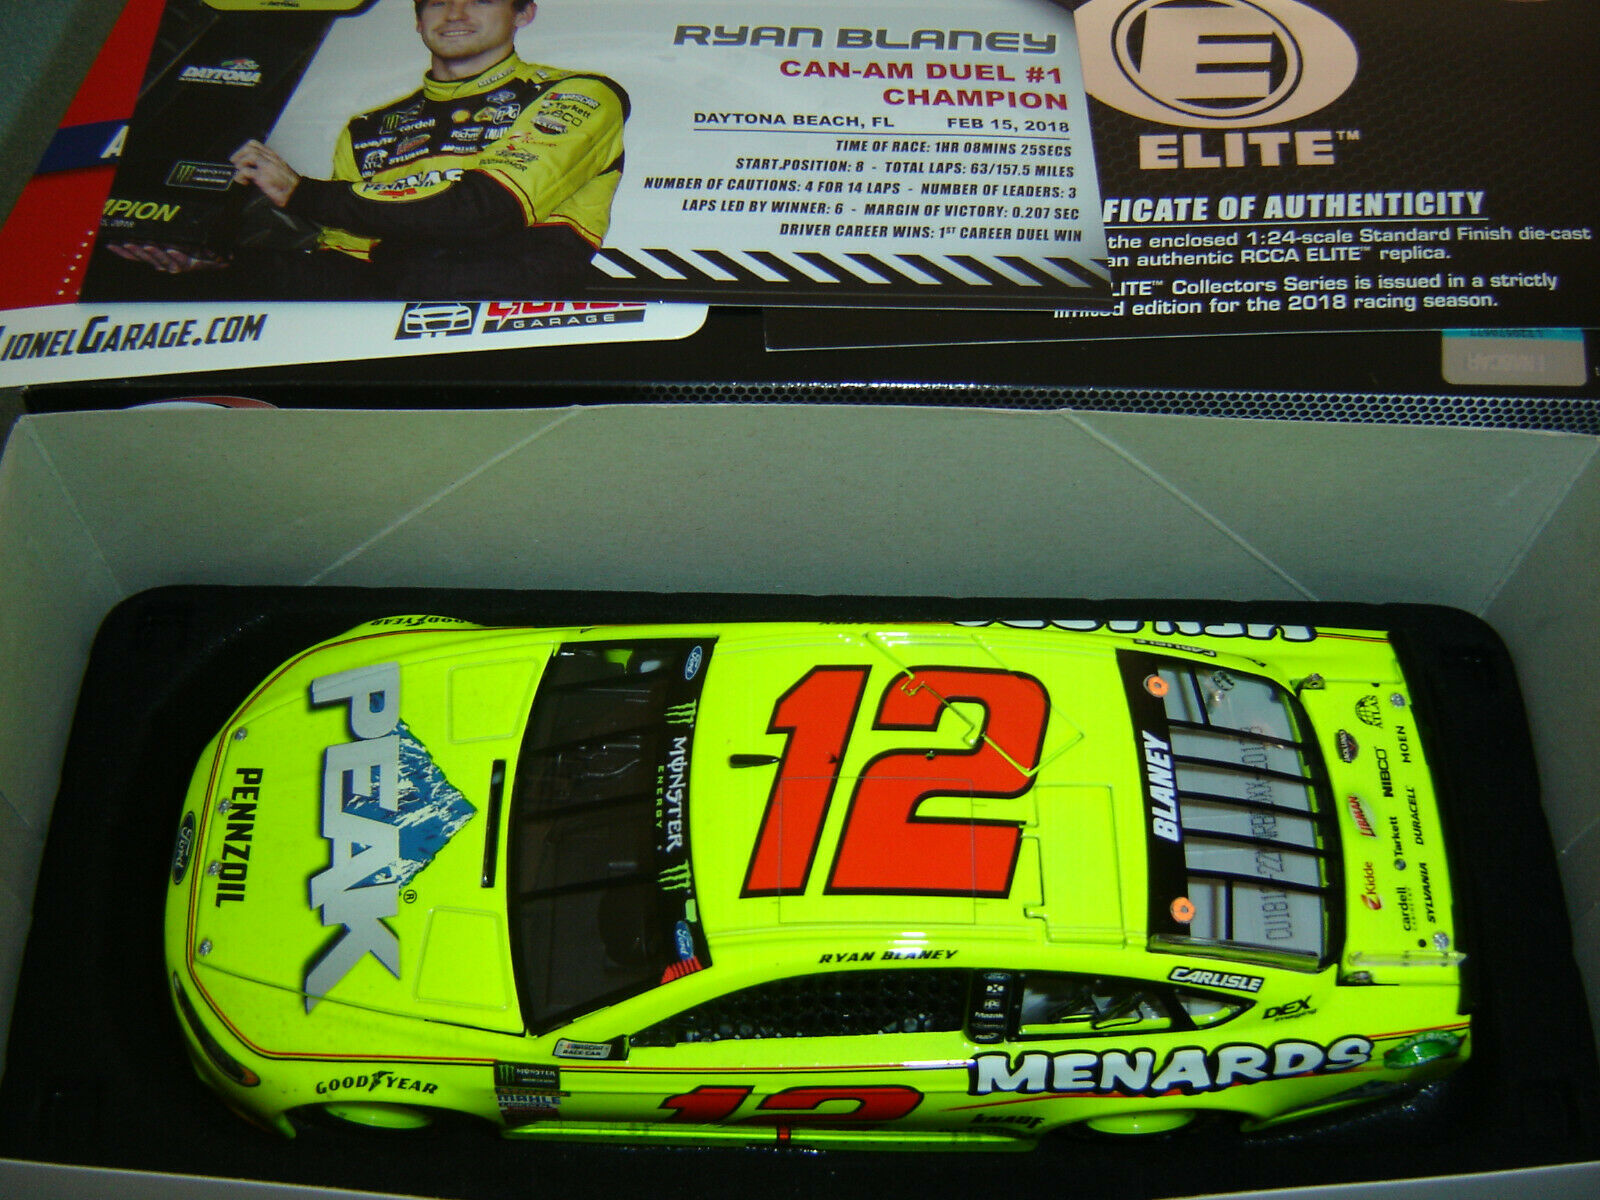 RYAN BLANEY MENARDS Can-Am Duel WIN 2018 Action ELITE 1 24 1 253